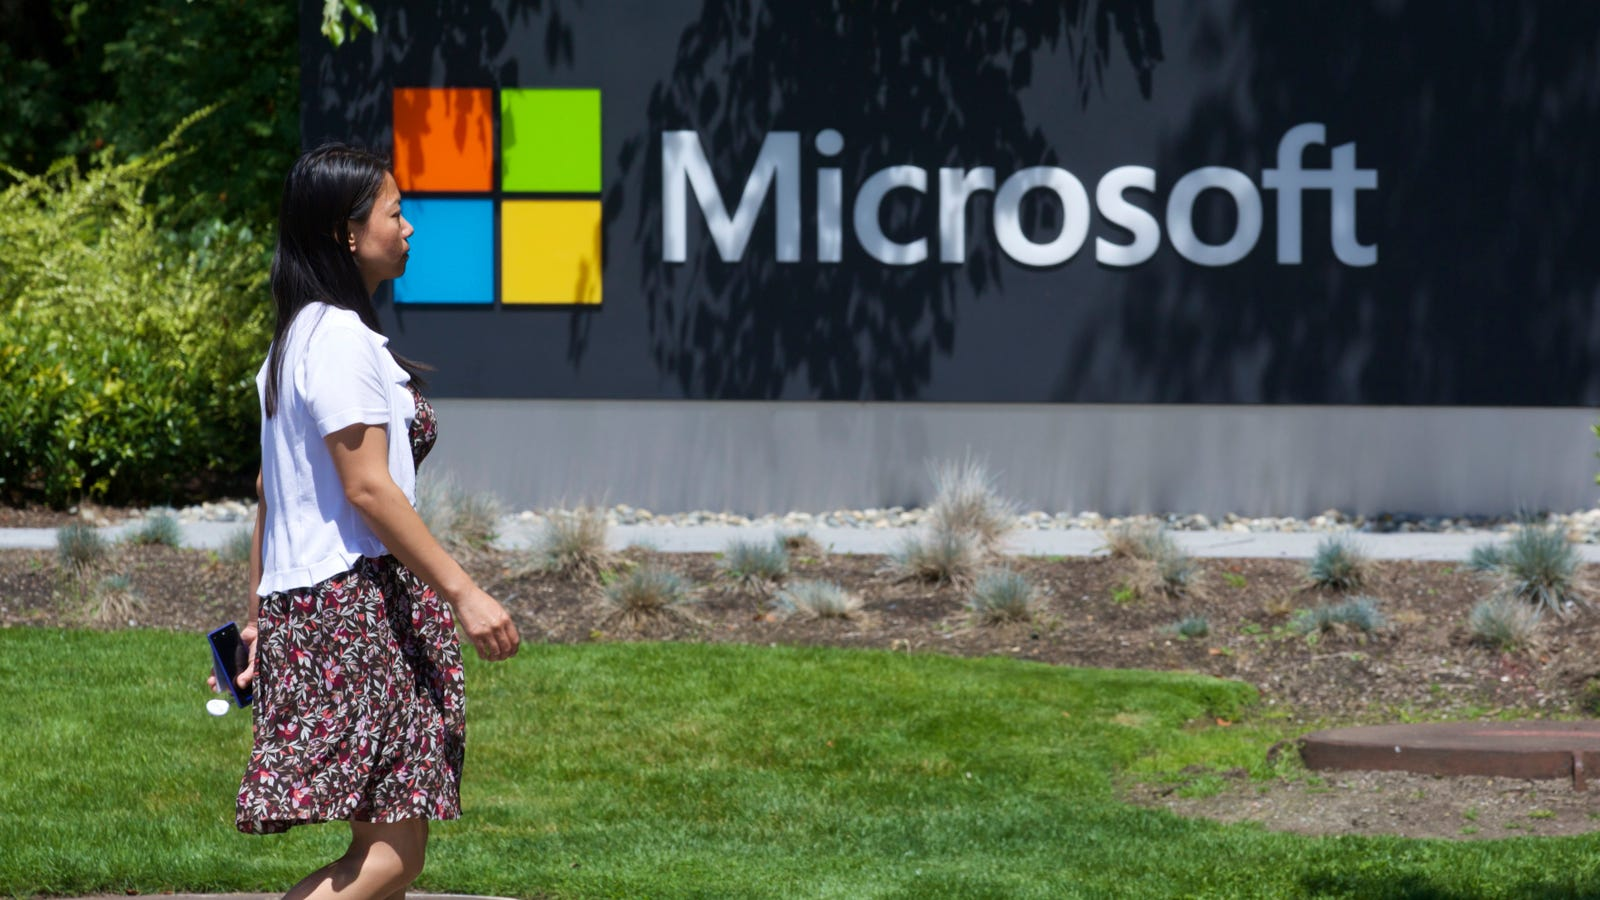 Microsoft Upheld Less Than 1 Percent of Gender Discrimination Complaints by Female Employees, Court Documents Say